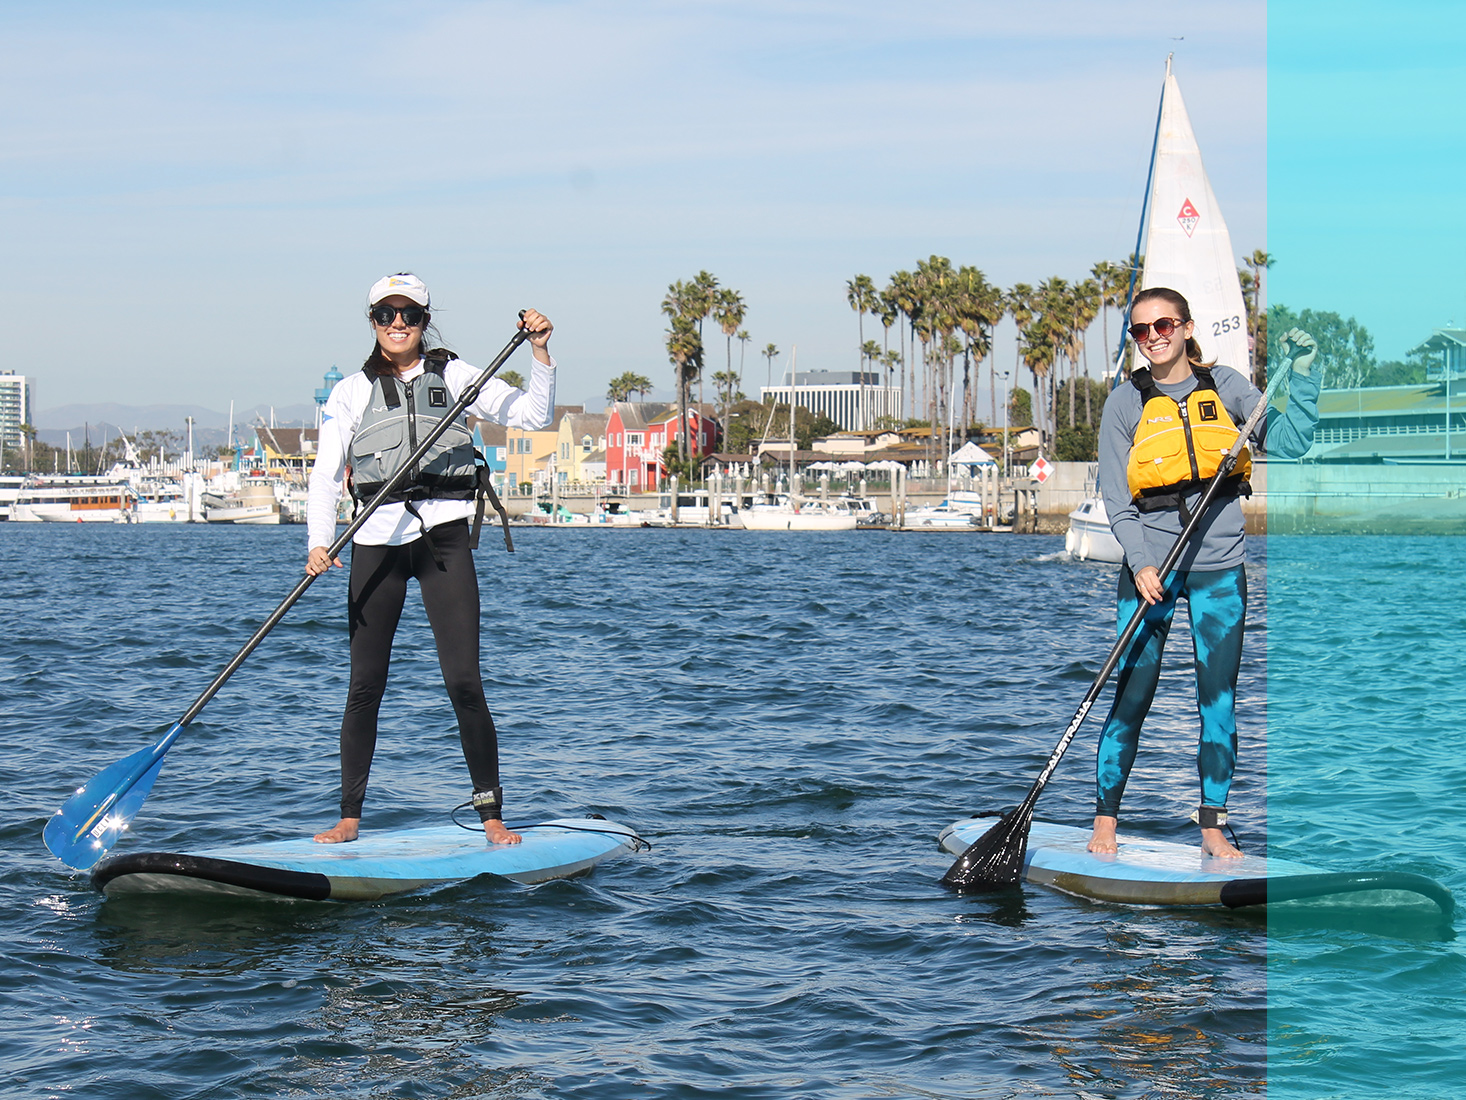 Two students work on their paddle boarding skills at the Marina.